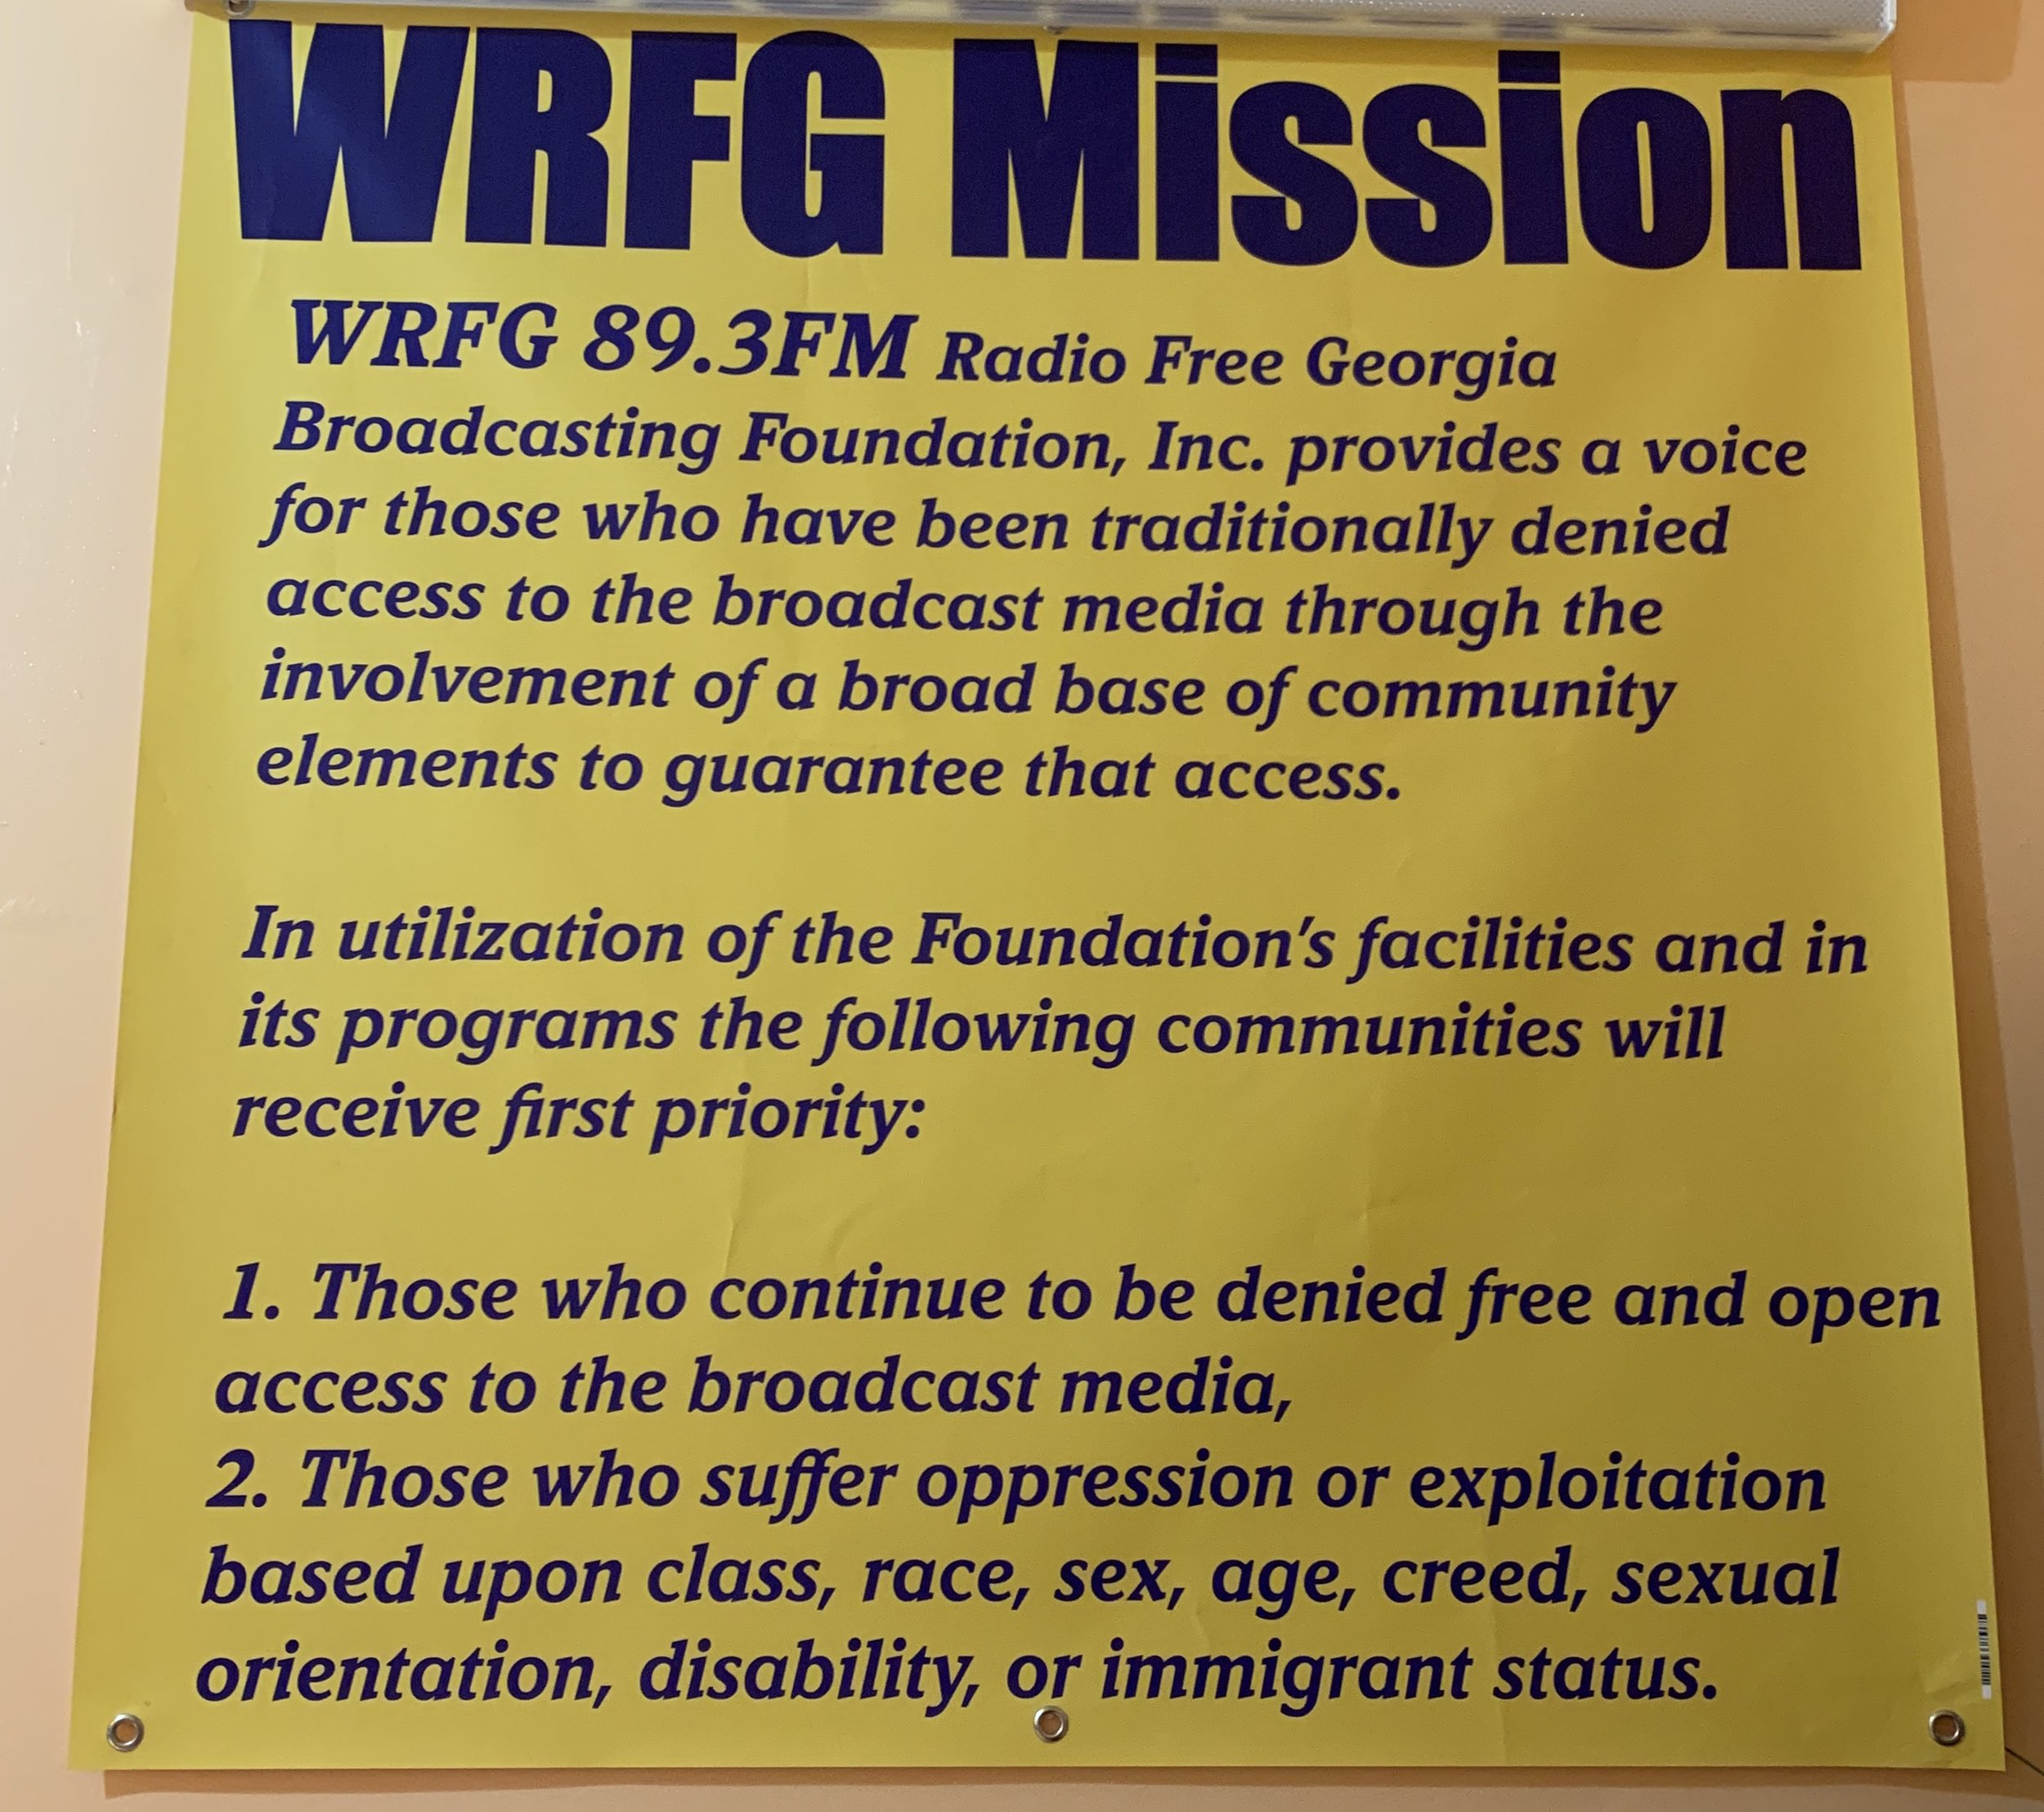 WRFG's mission statement. Photo by Gina Caison.